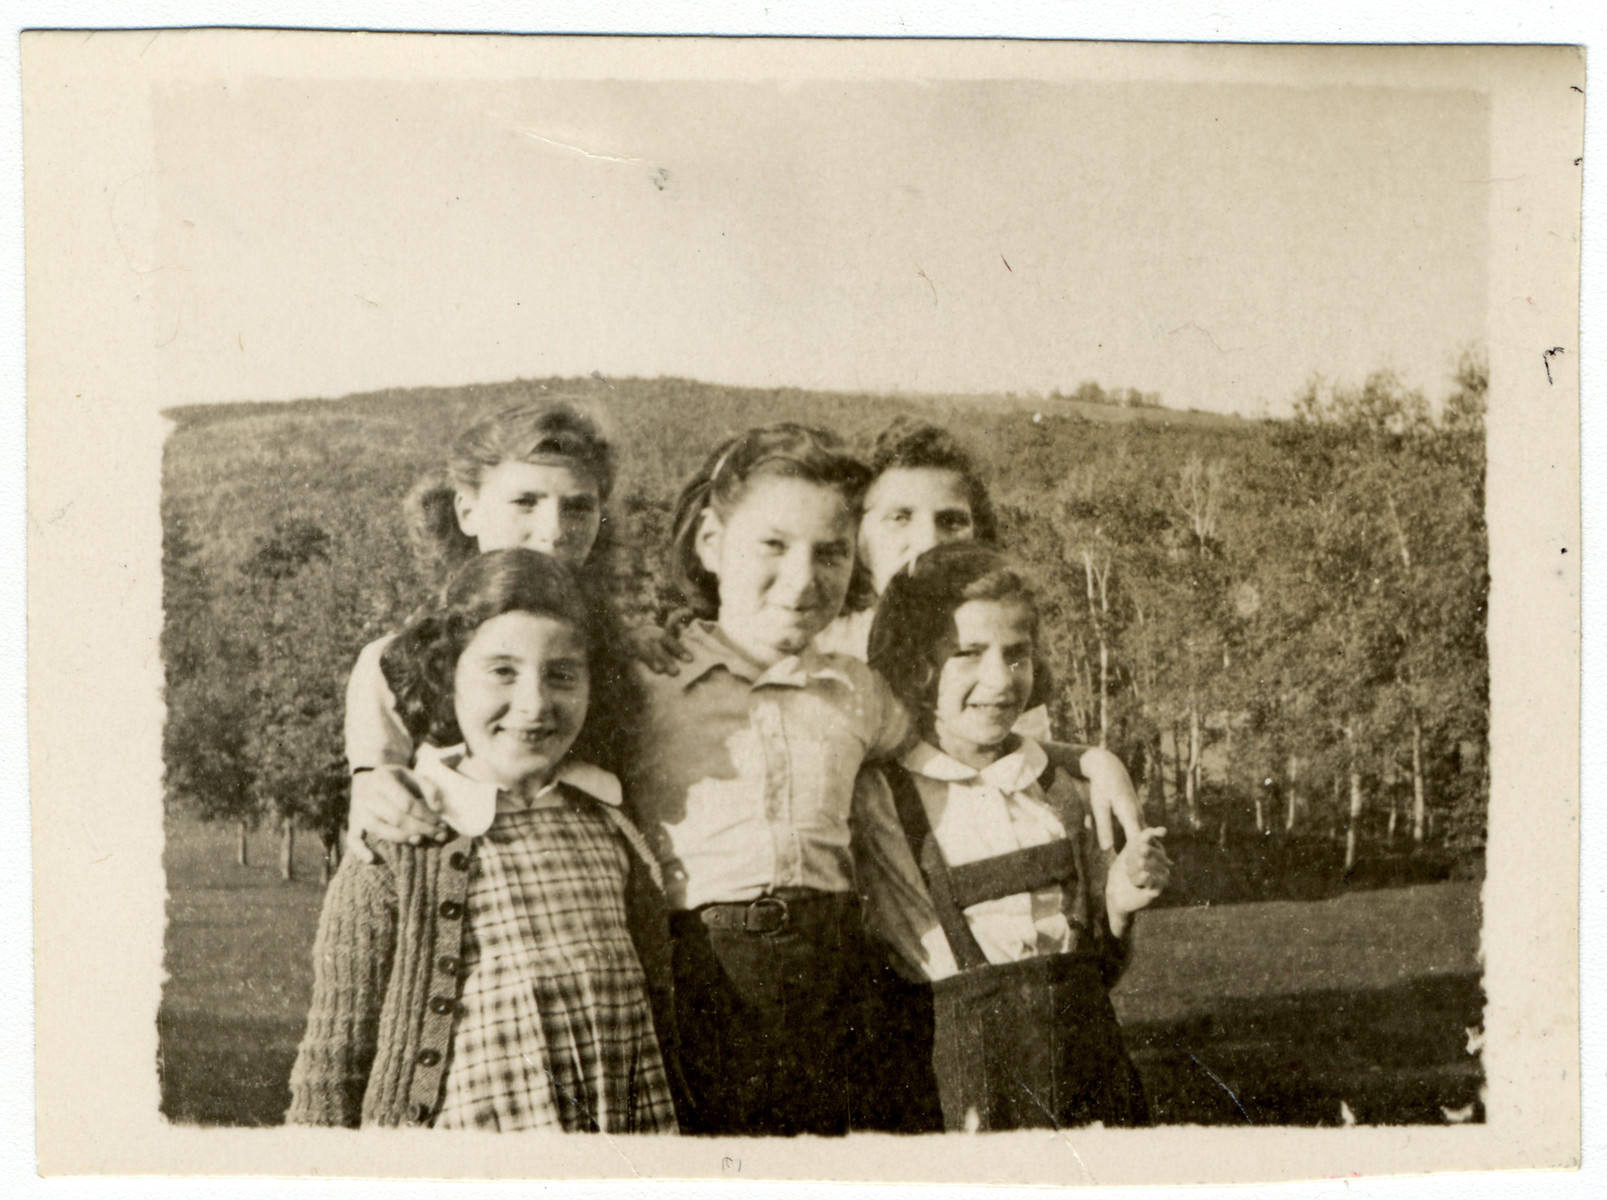 A group of young girls pose at the children's home of Chateau de la Hille.  Those pictured include Betty Schuetz (center) and Toni Rosenblatt (right front).